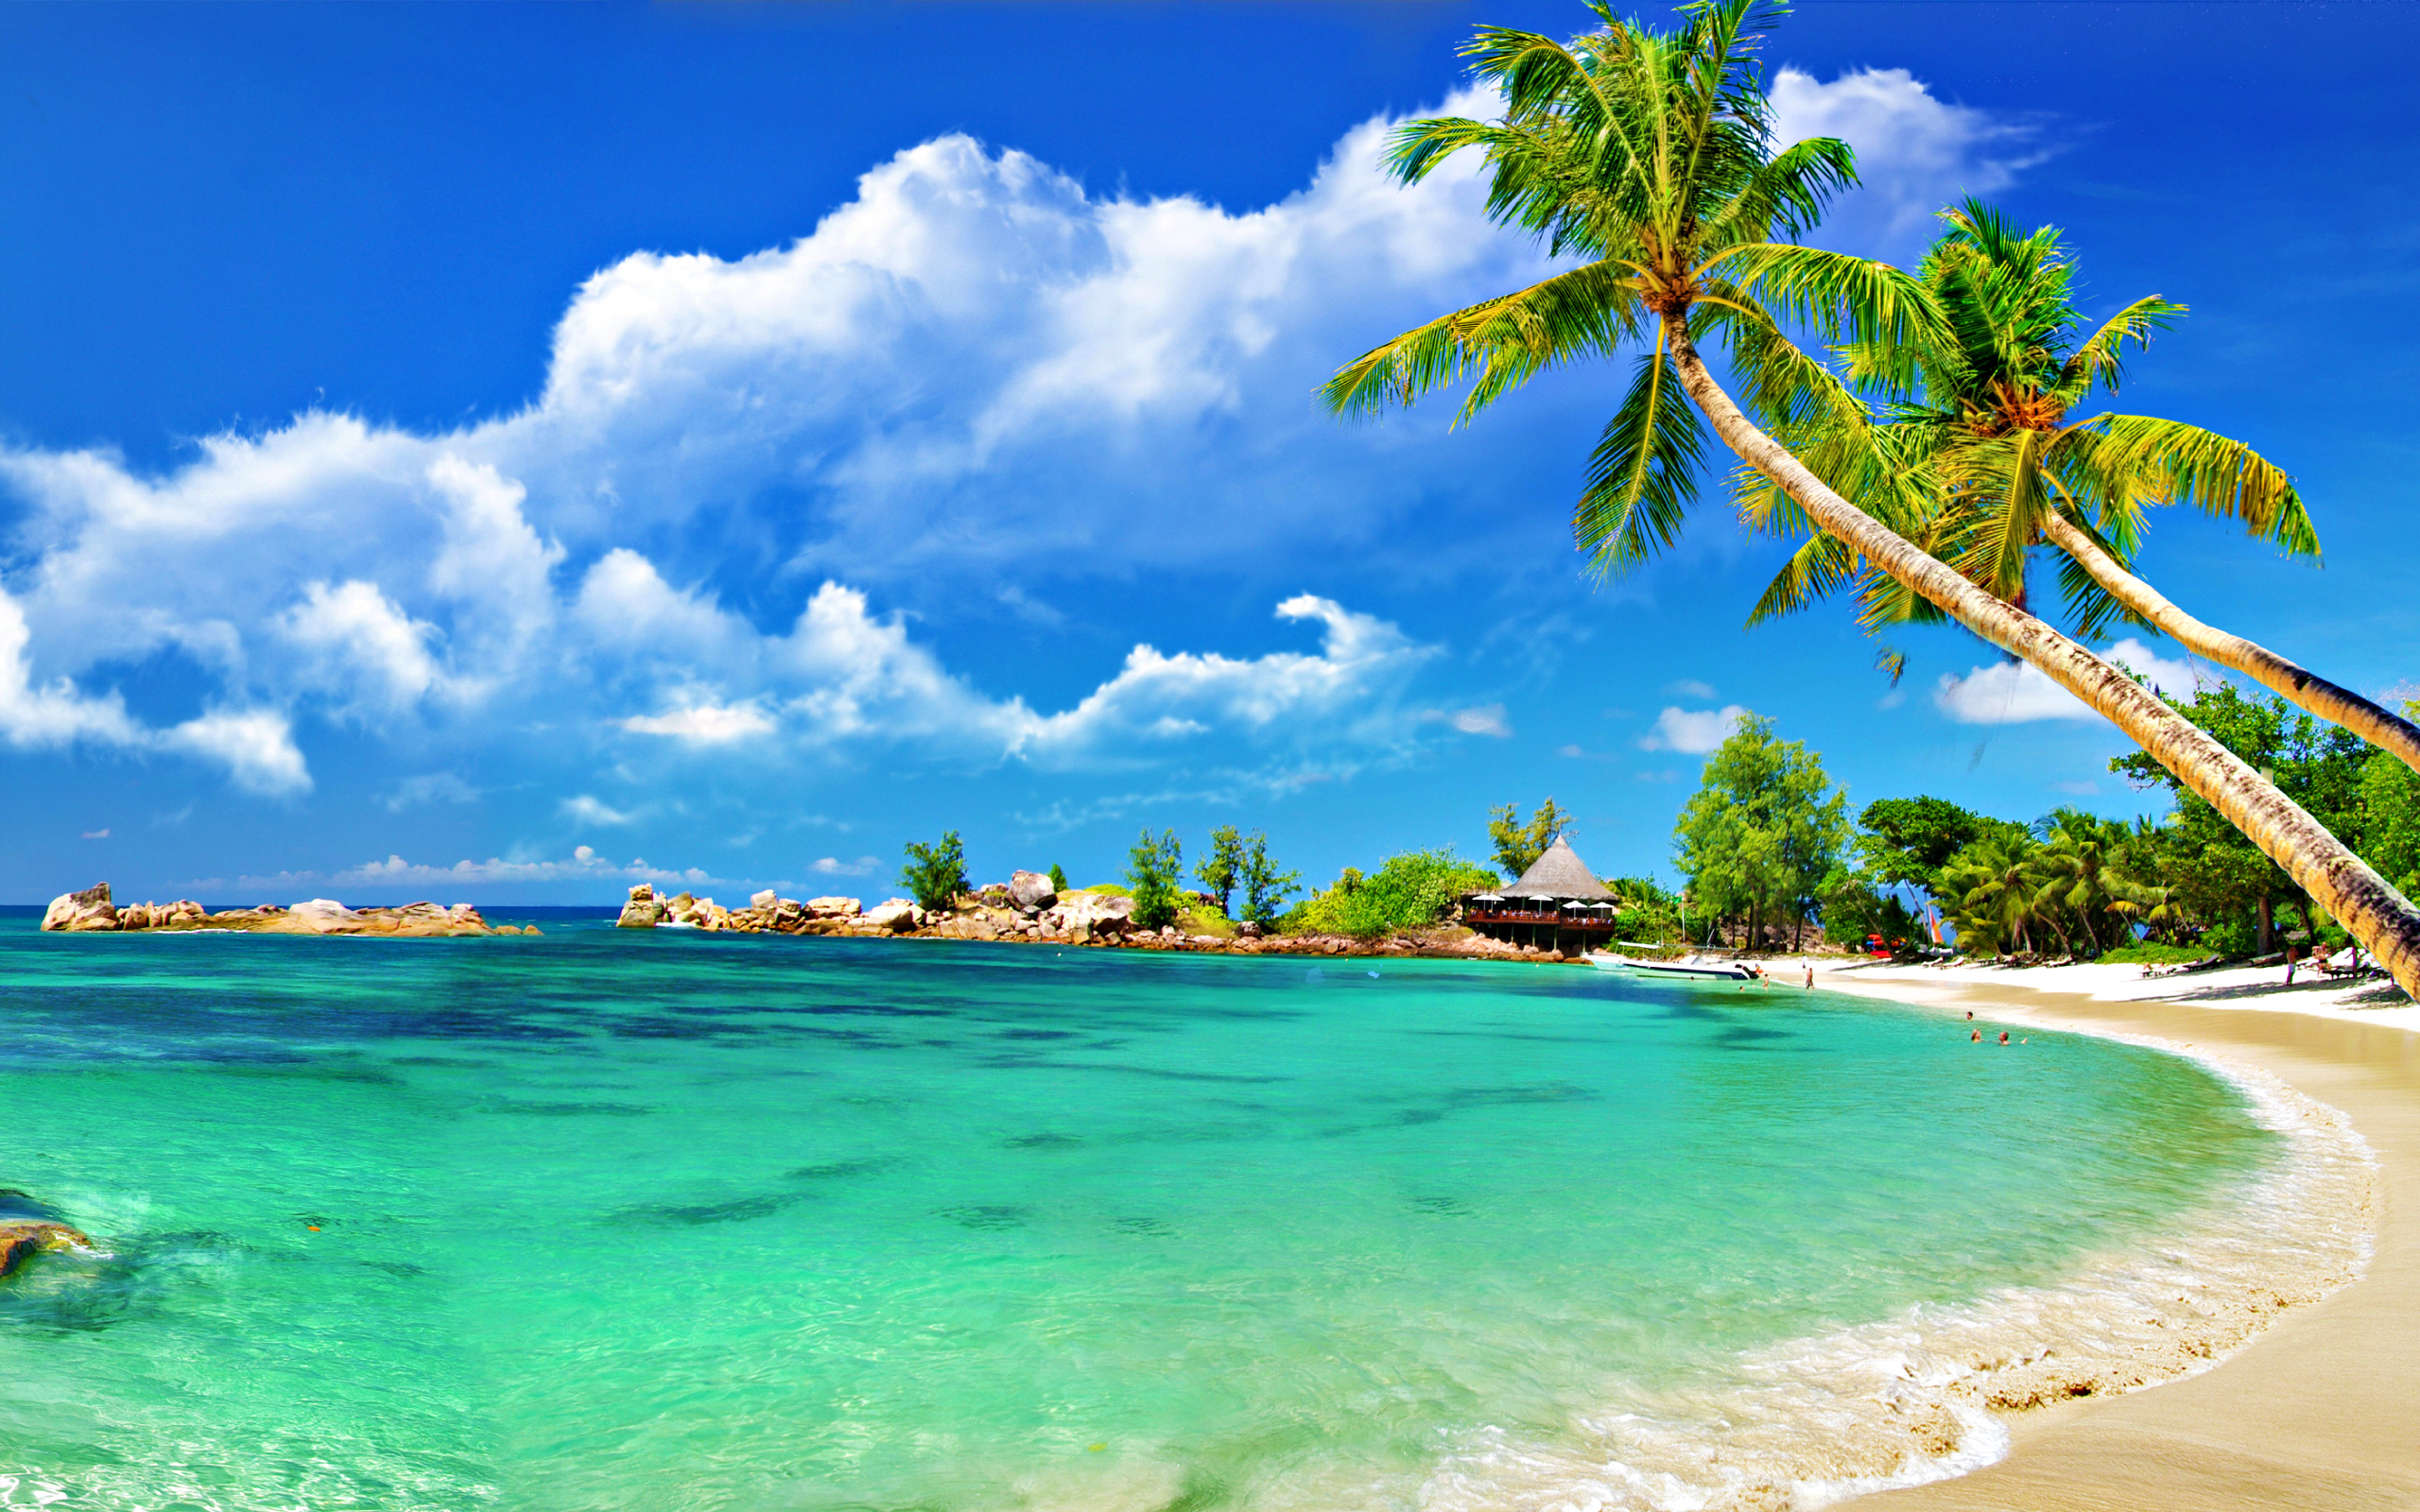 45 Incredible Collection Of Beach Wallpapers   FunPulp 2560x1600